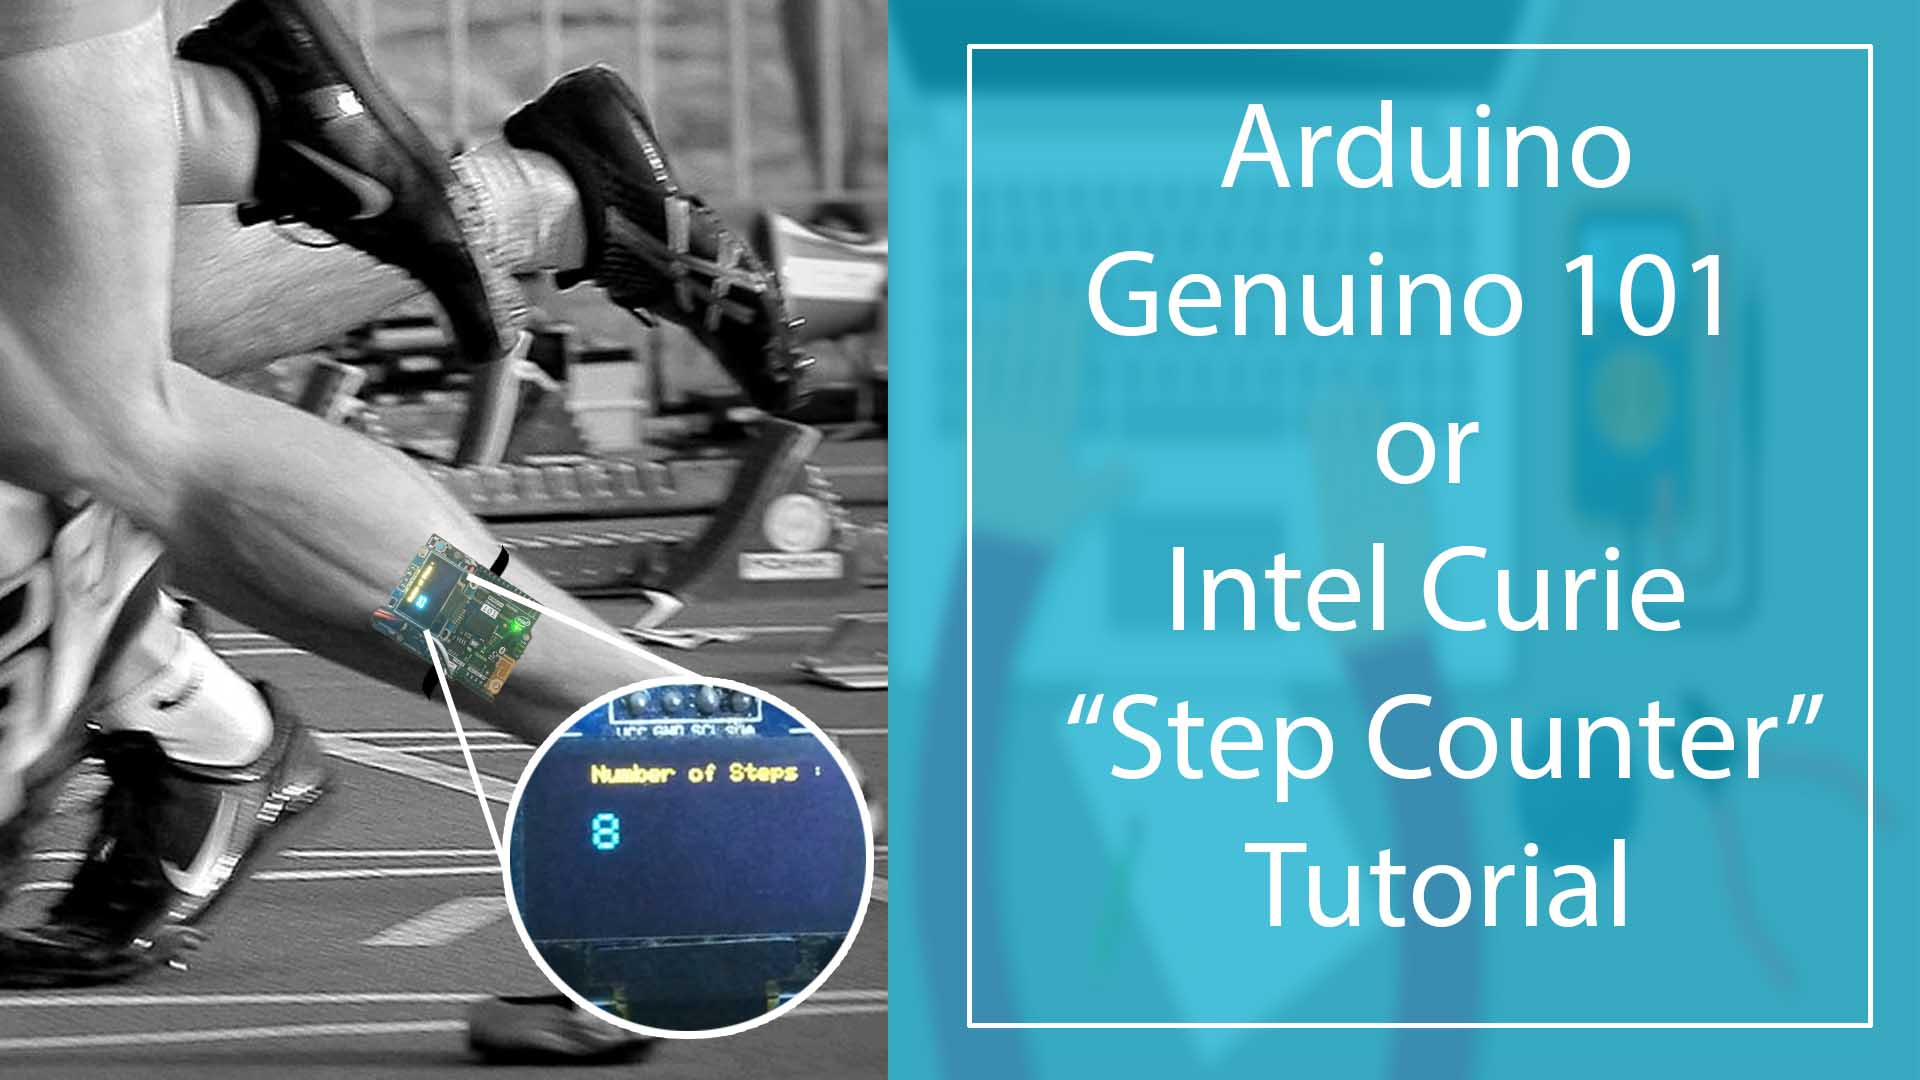 Step Counter using Arduino Genuino 101 / Intel Curie